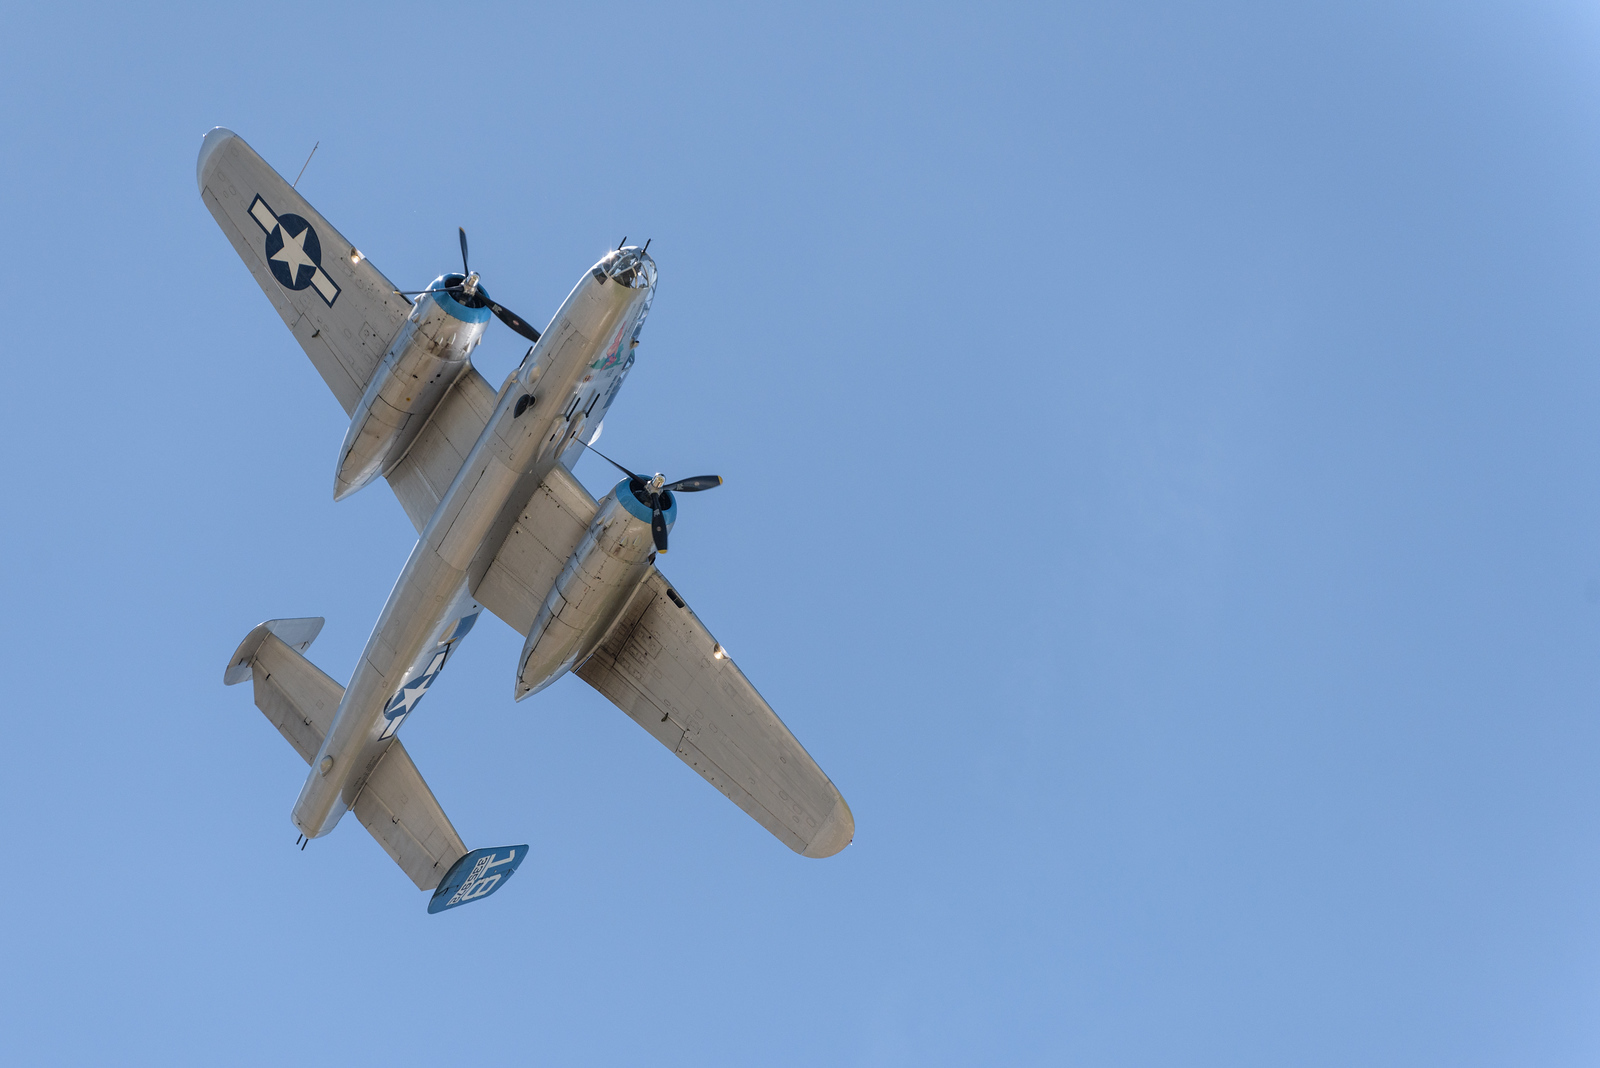 B-25 Maid in the Shade